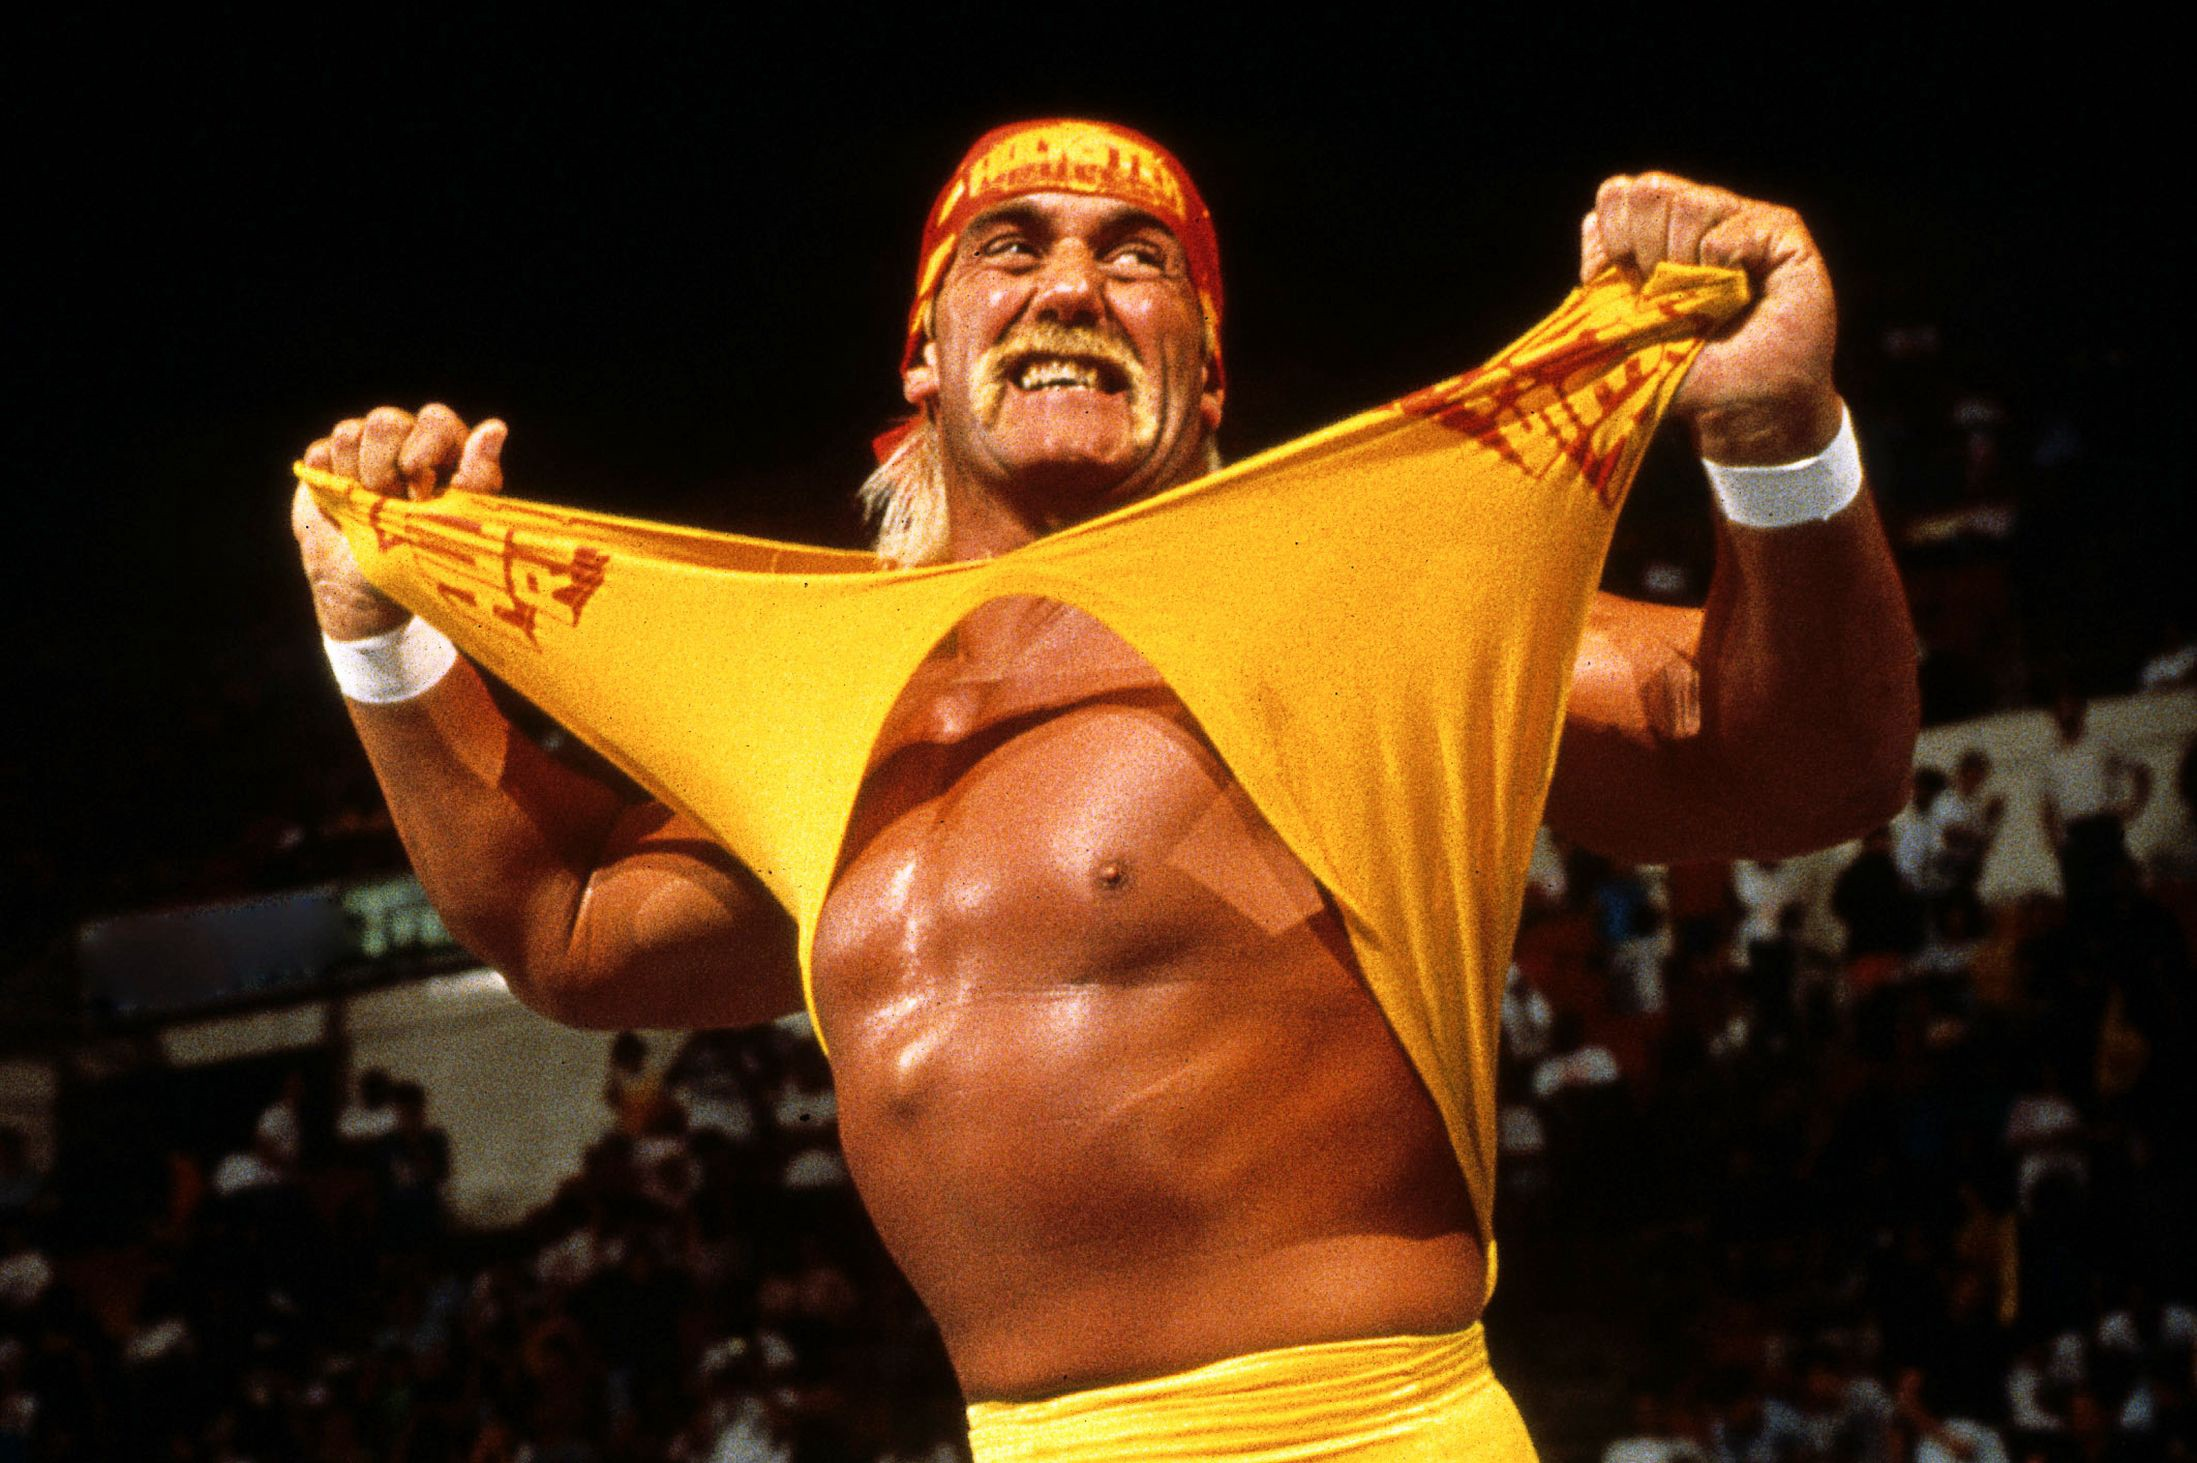 1980s Pro Wrestling Entrance Themes are Coked-Up Rock